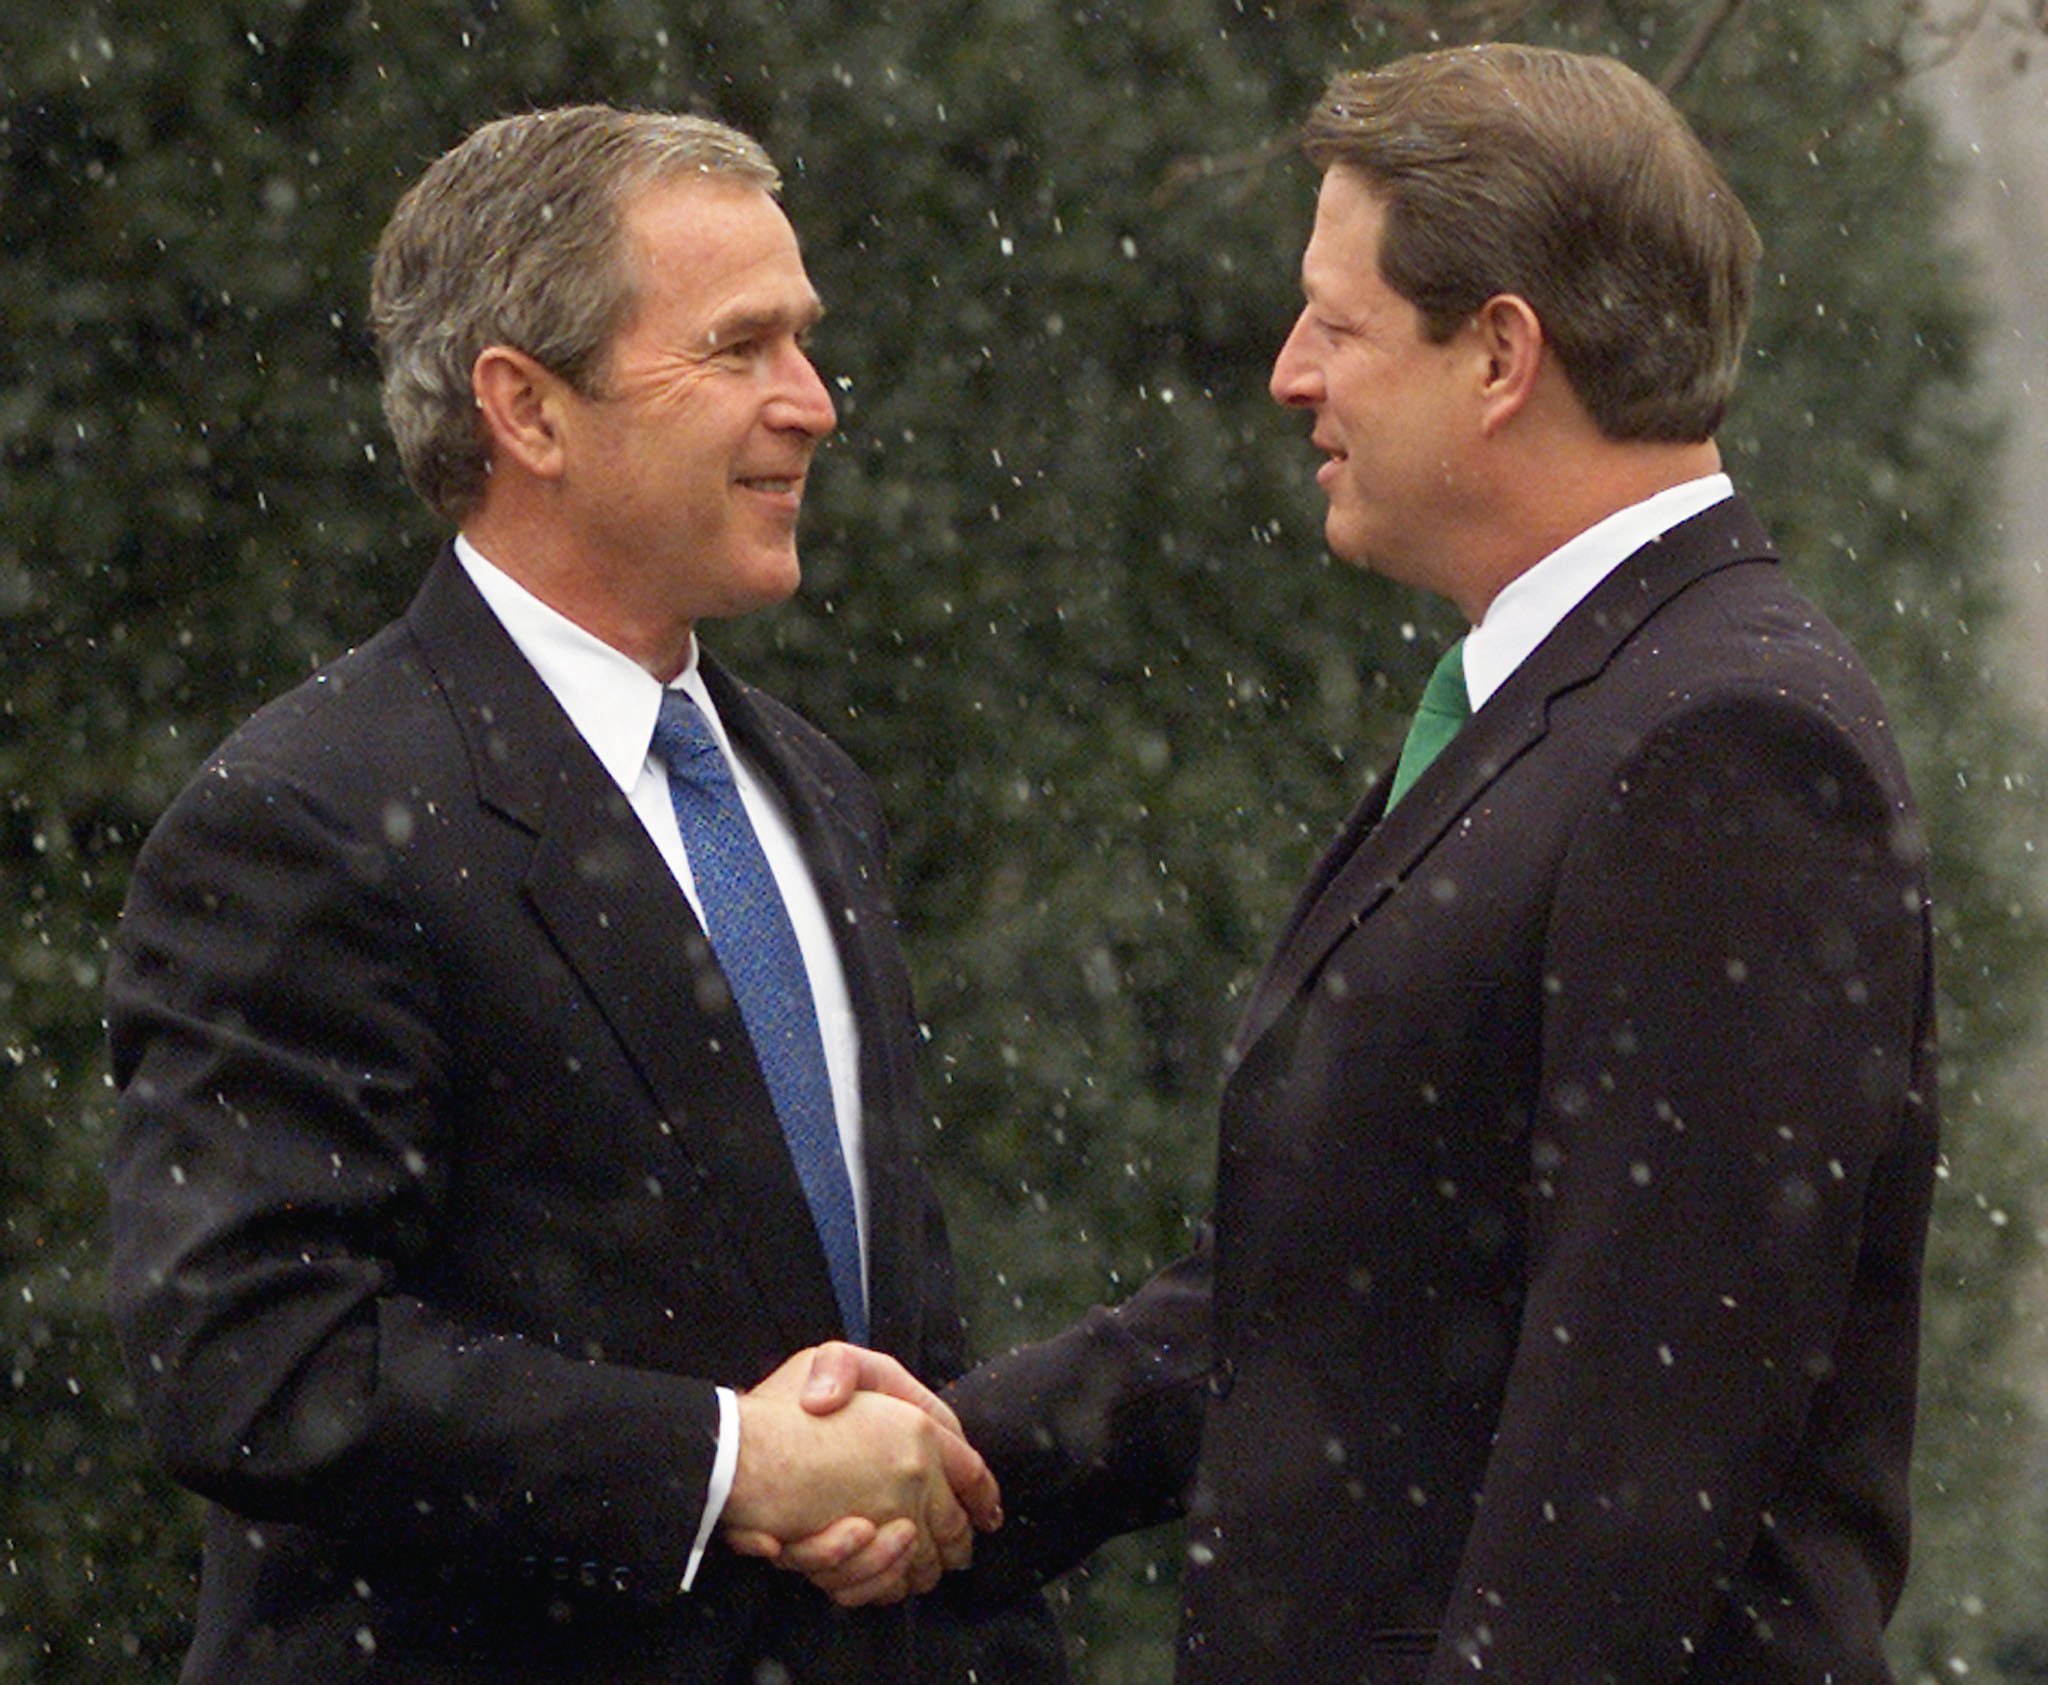 analysis of the 2000 presidential election george w bush vs al gore By mauro p porto the 2000 presidential election in the united states and the  events that took place  from a growing body of literature on framing analysis 2   that were organized with the two leading candidates, george w bush and al  gore as  one story by folha's correspondent compared how the.